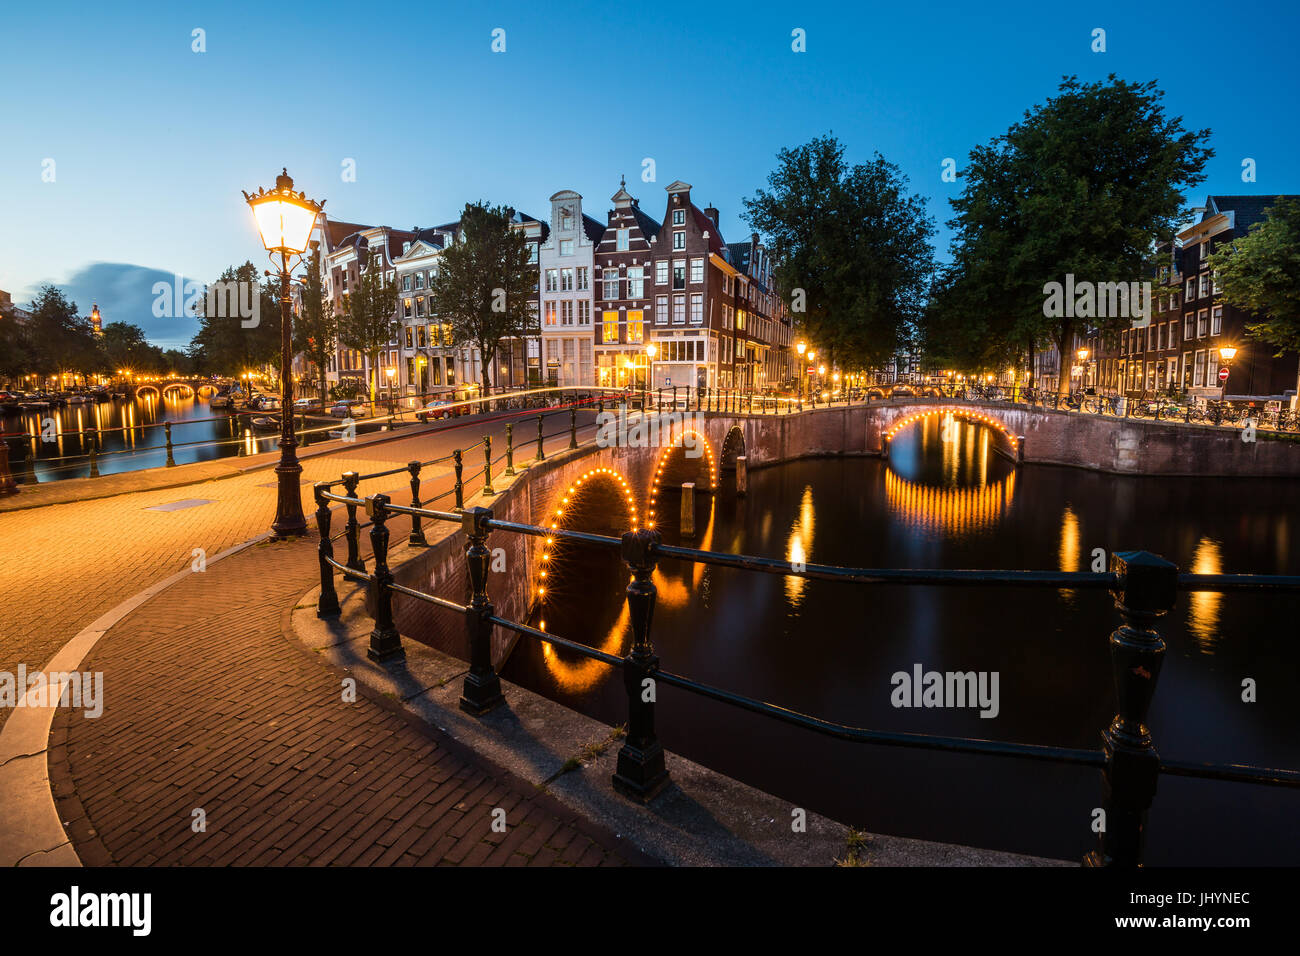 Amsterdam's southern canal rings at the intersection of Leidsegracht and Keizersgracht, Amsterdam, The Netherlands - Stock Image